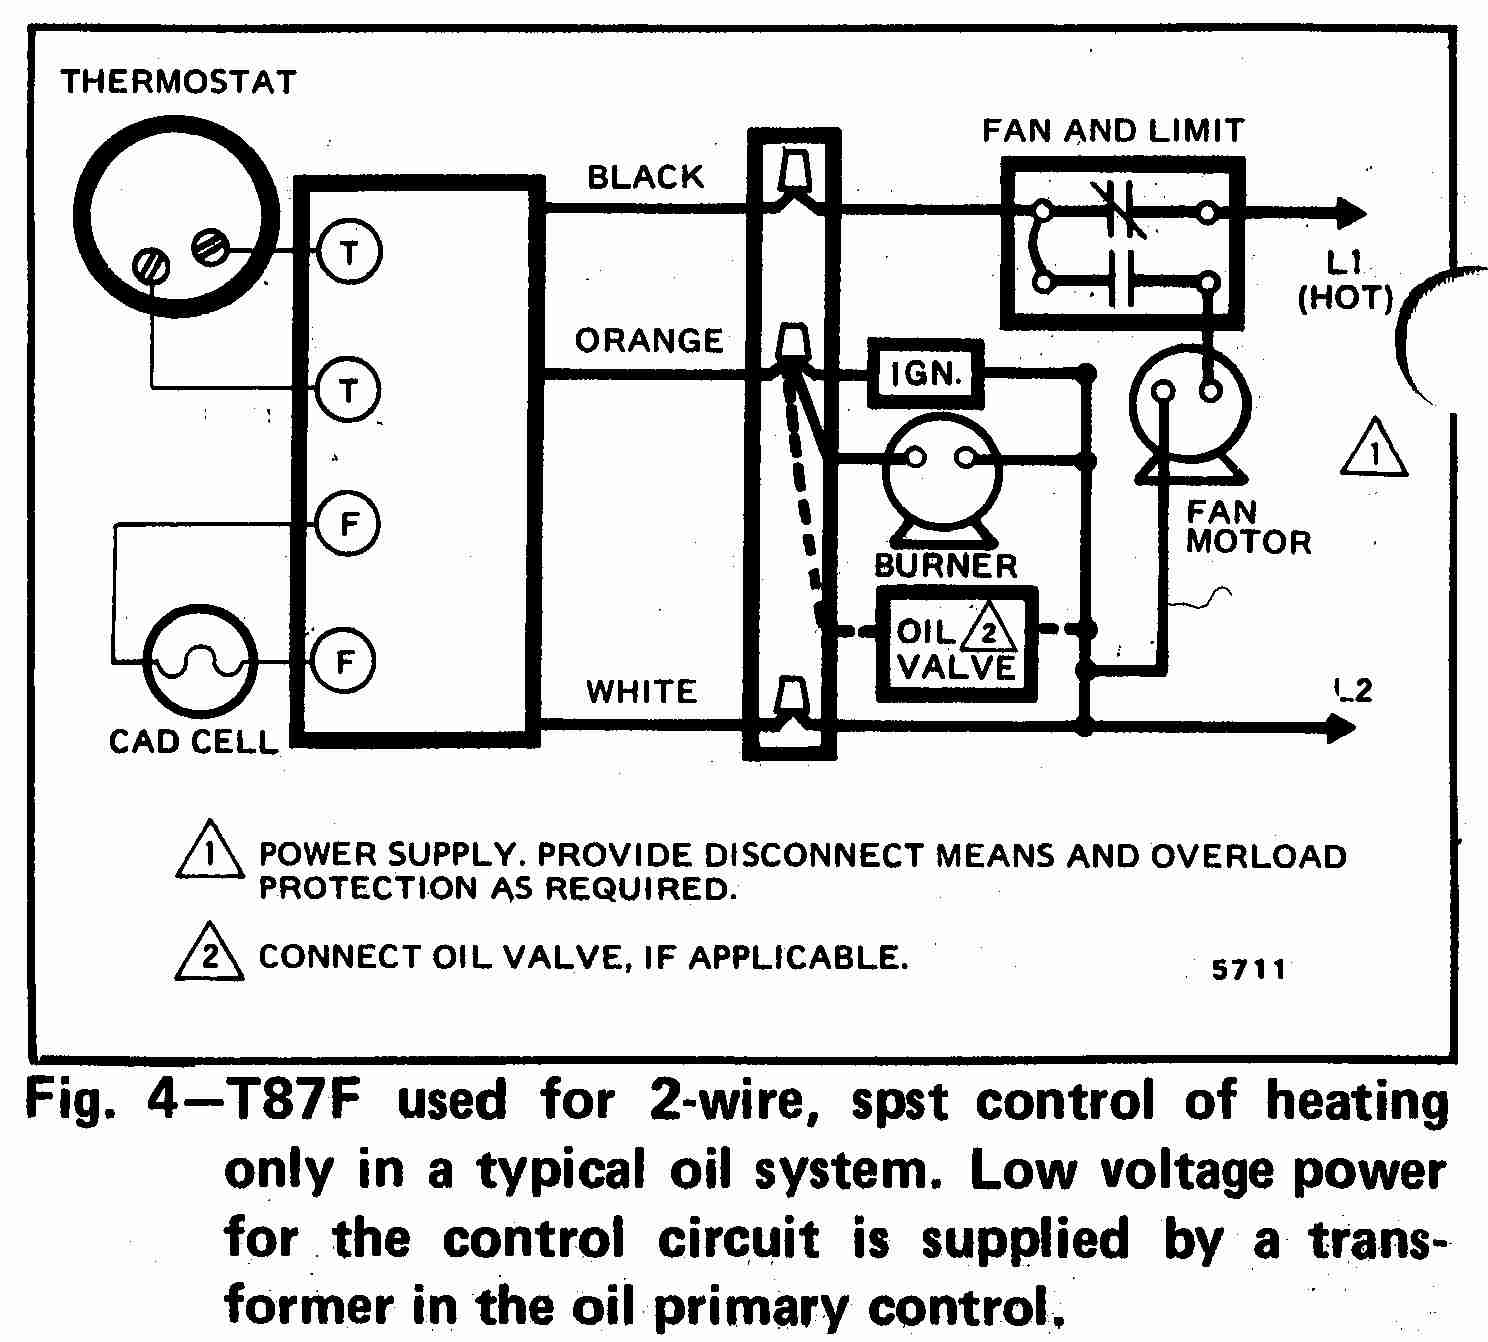 Wiring Diagram Thermostat - Diagram Doent Guide on